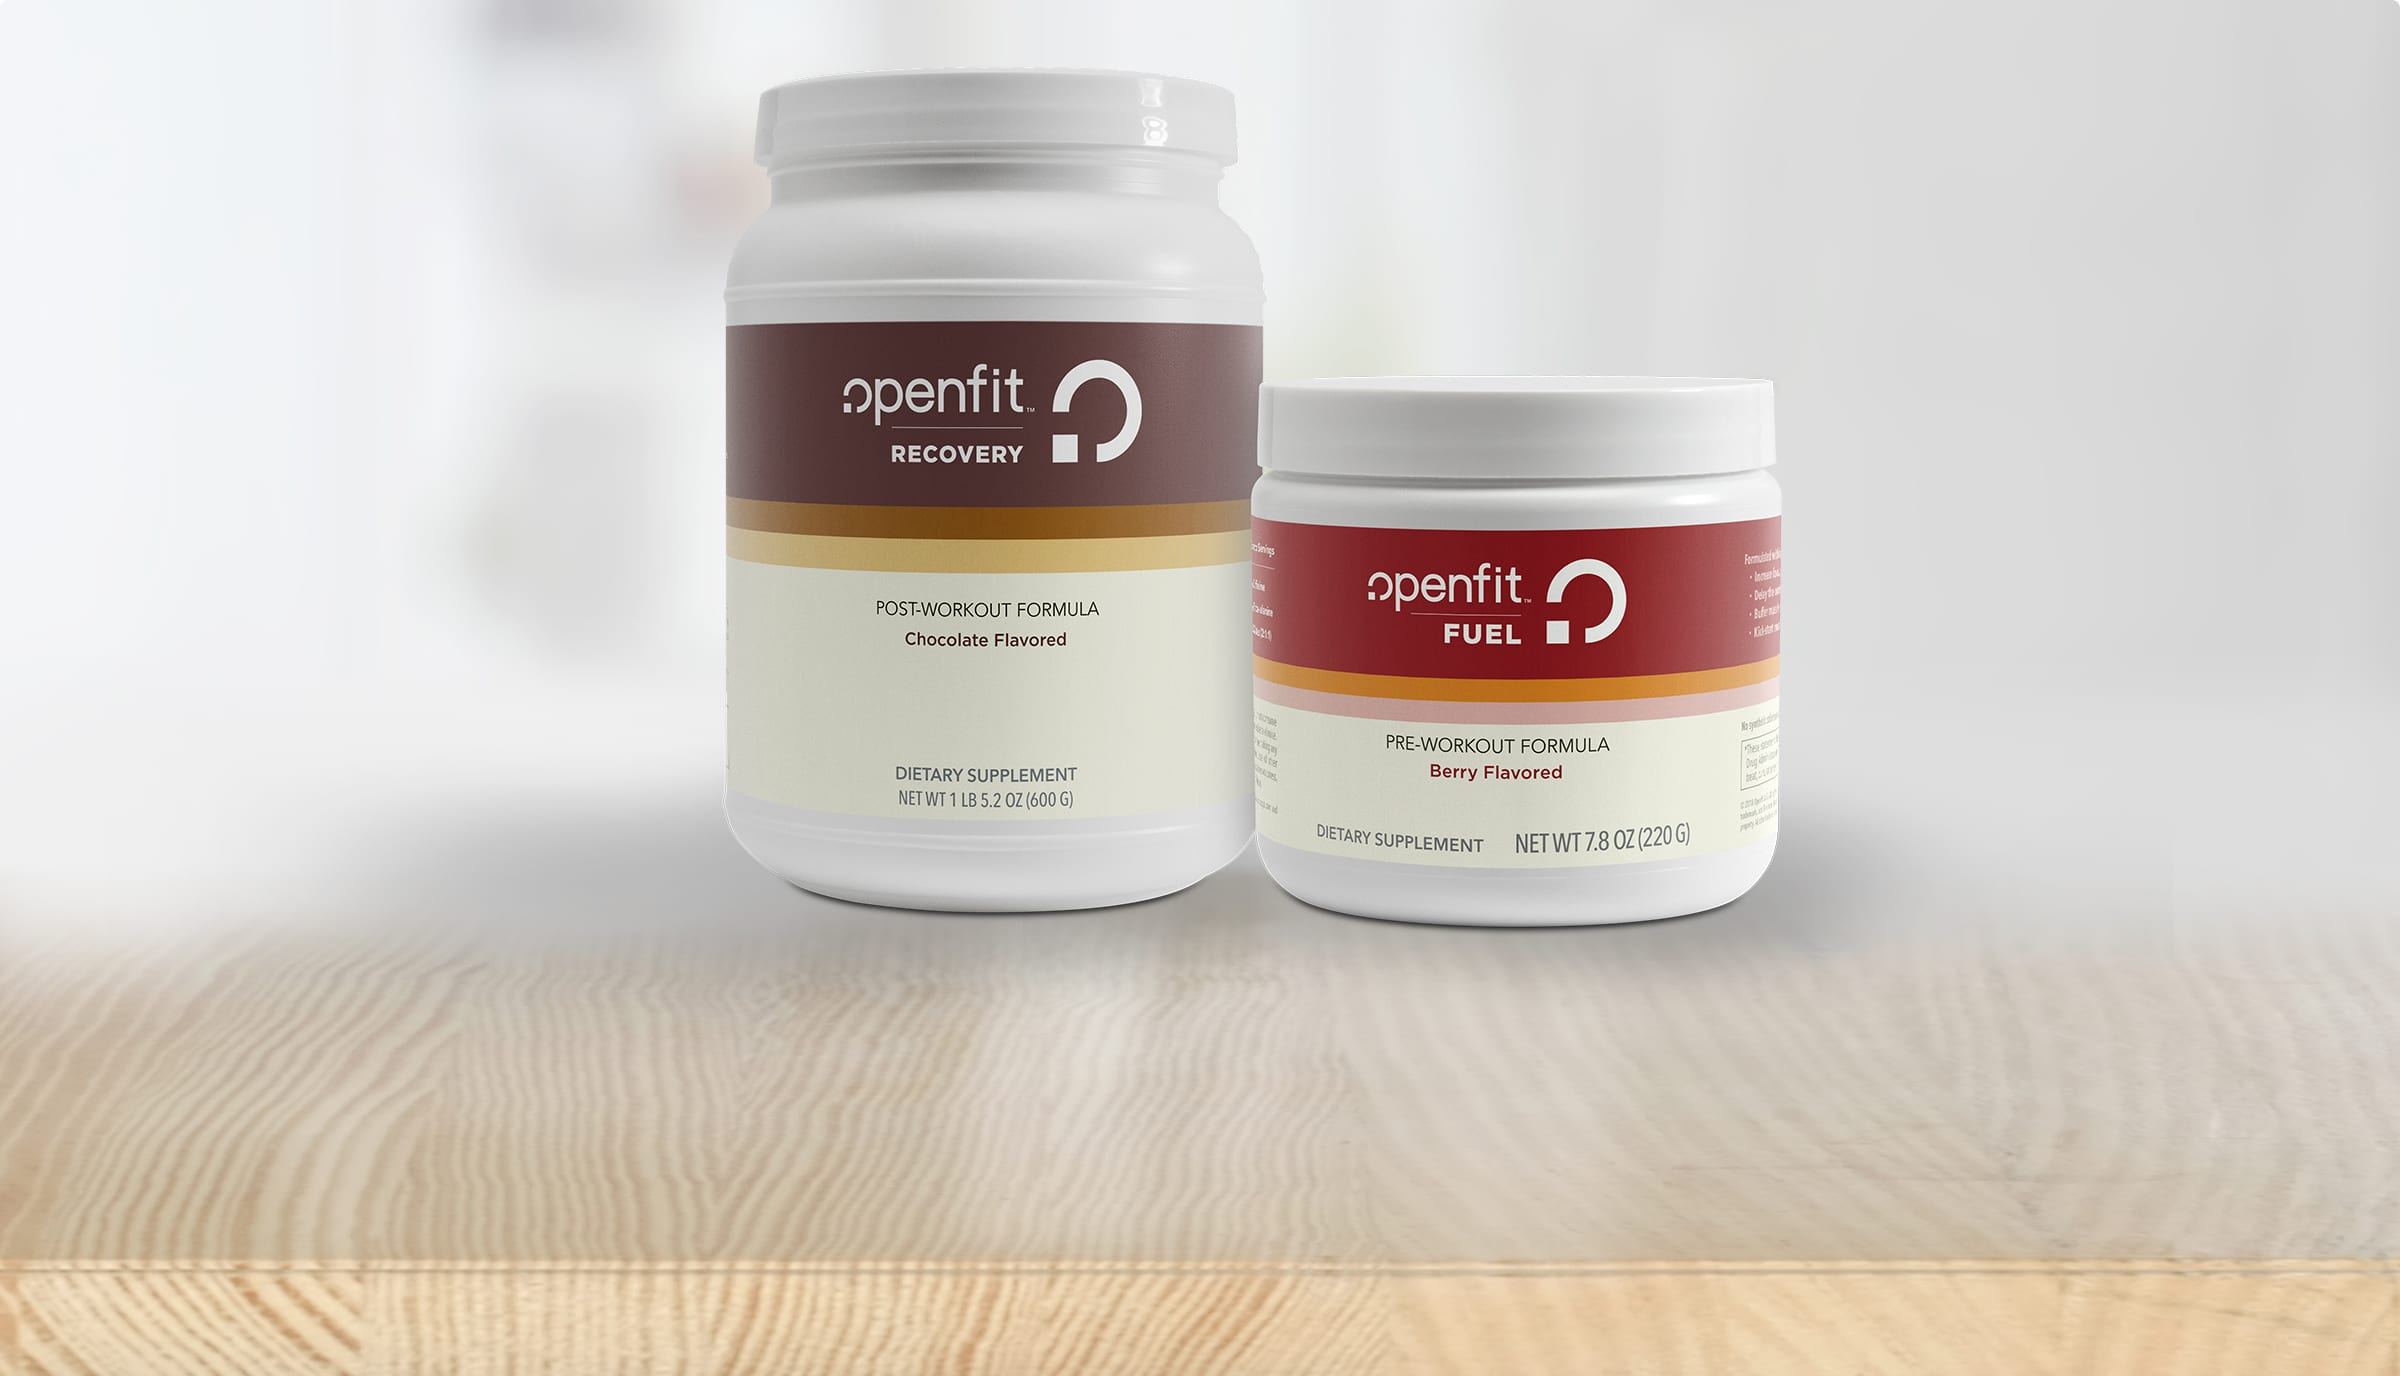 Openfit Supplements - Recovery and Fuel